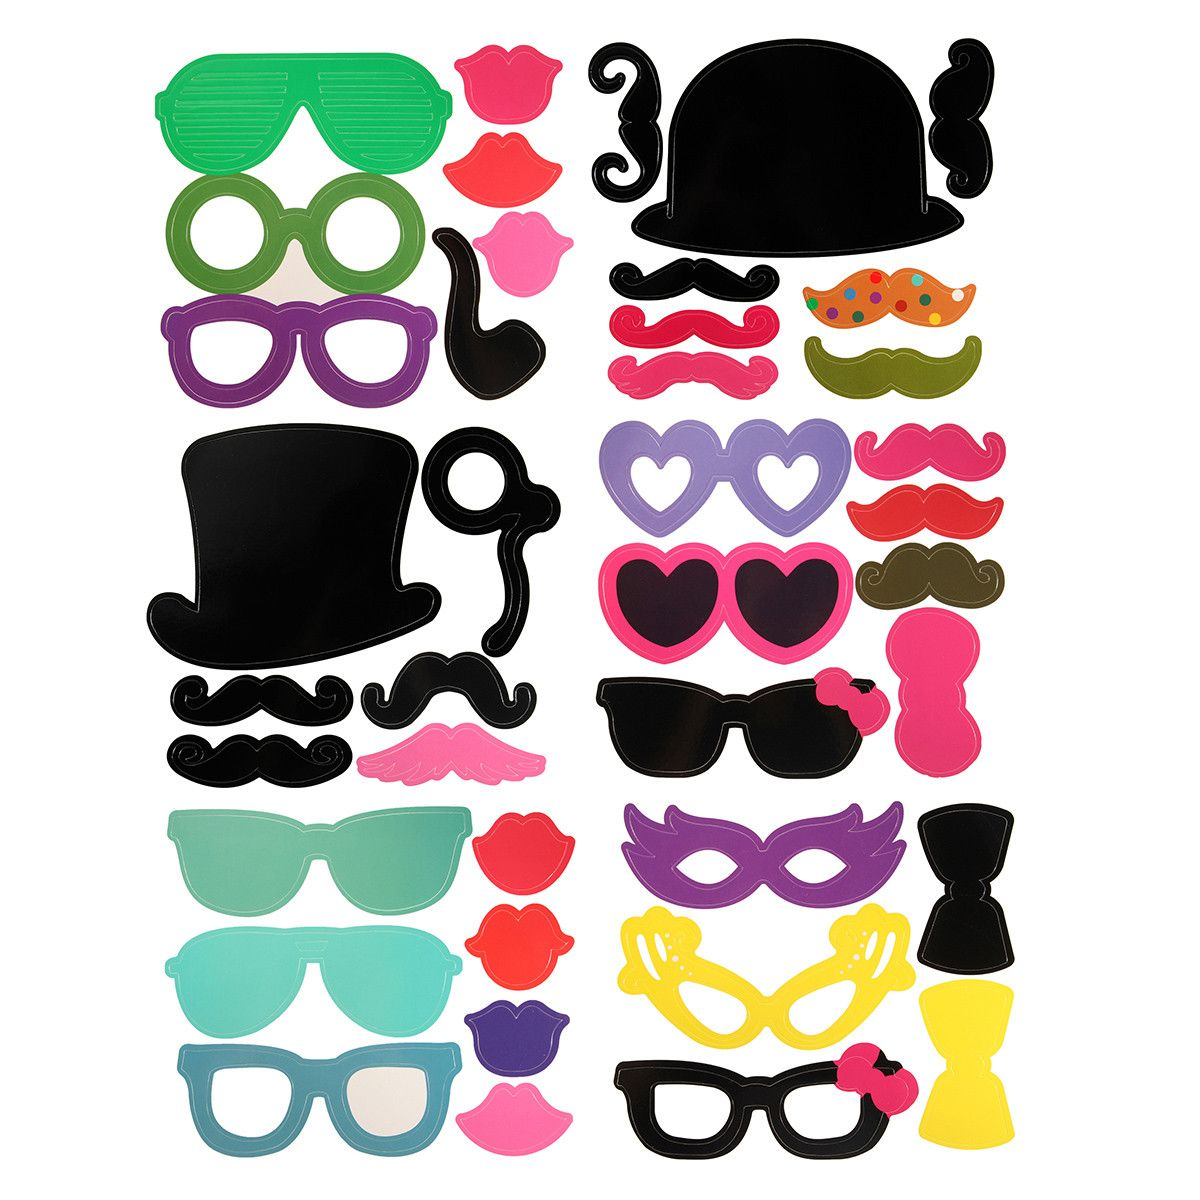 Sale 20 (6.99) 40PCS Photo Mustache Stick Booth